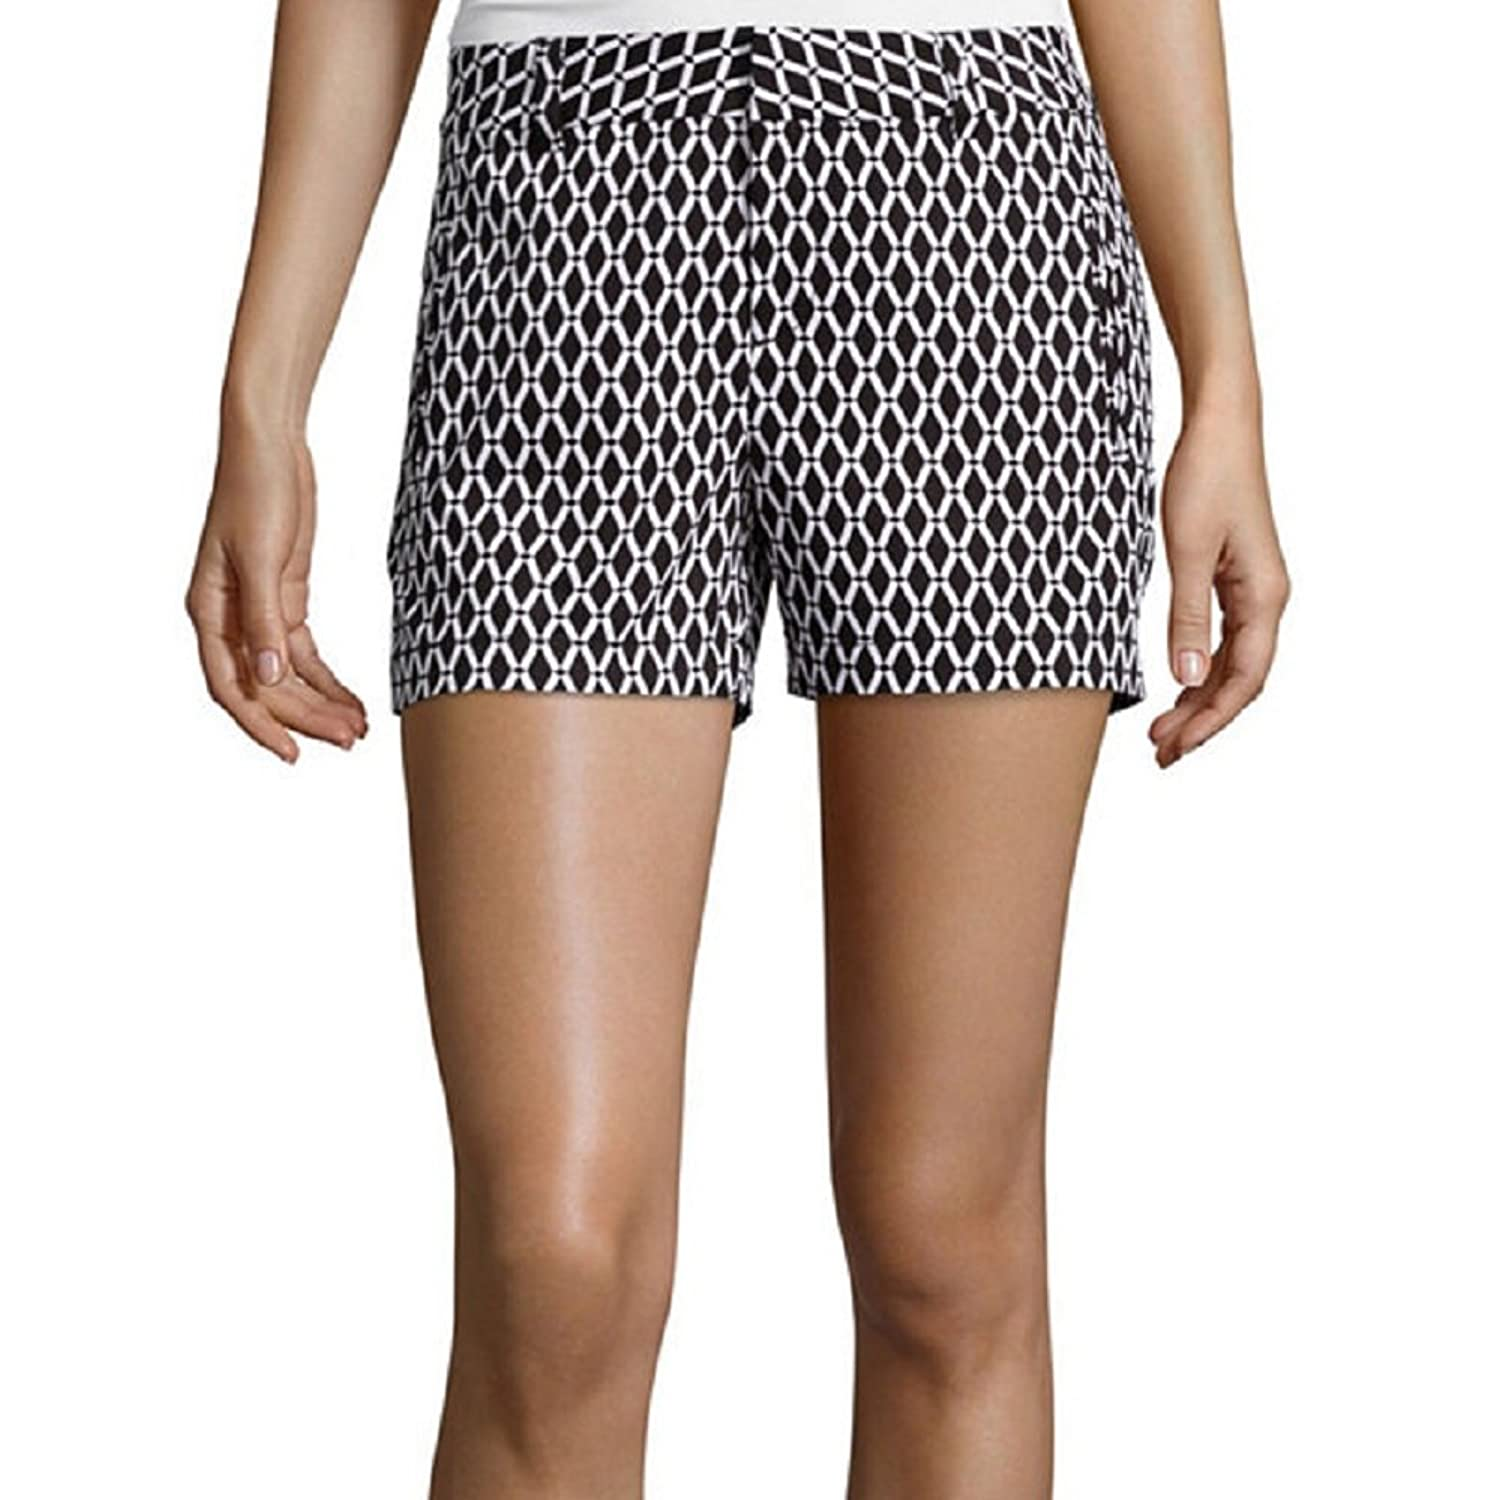 Stylus Twill Cotton Shorts Geometric Black/White Multi Size 16